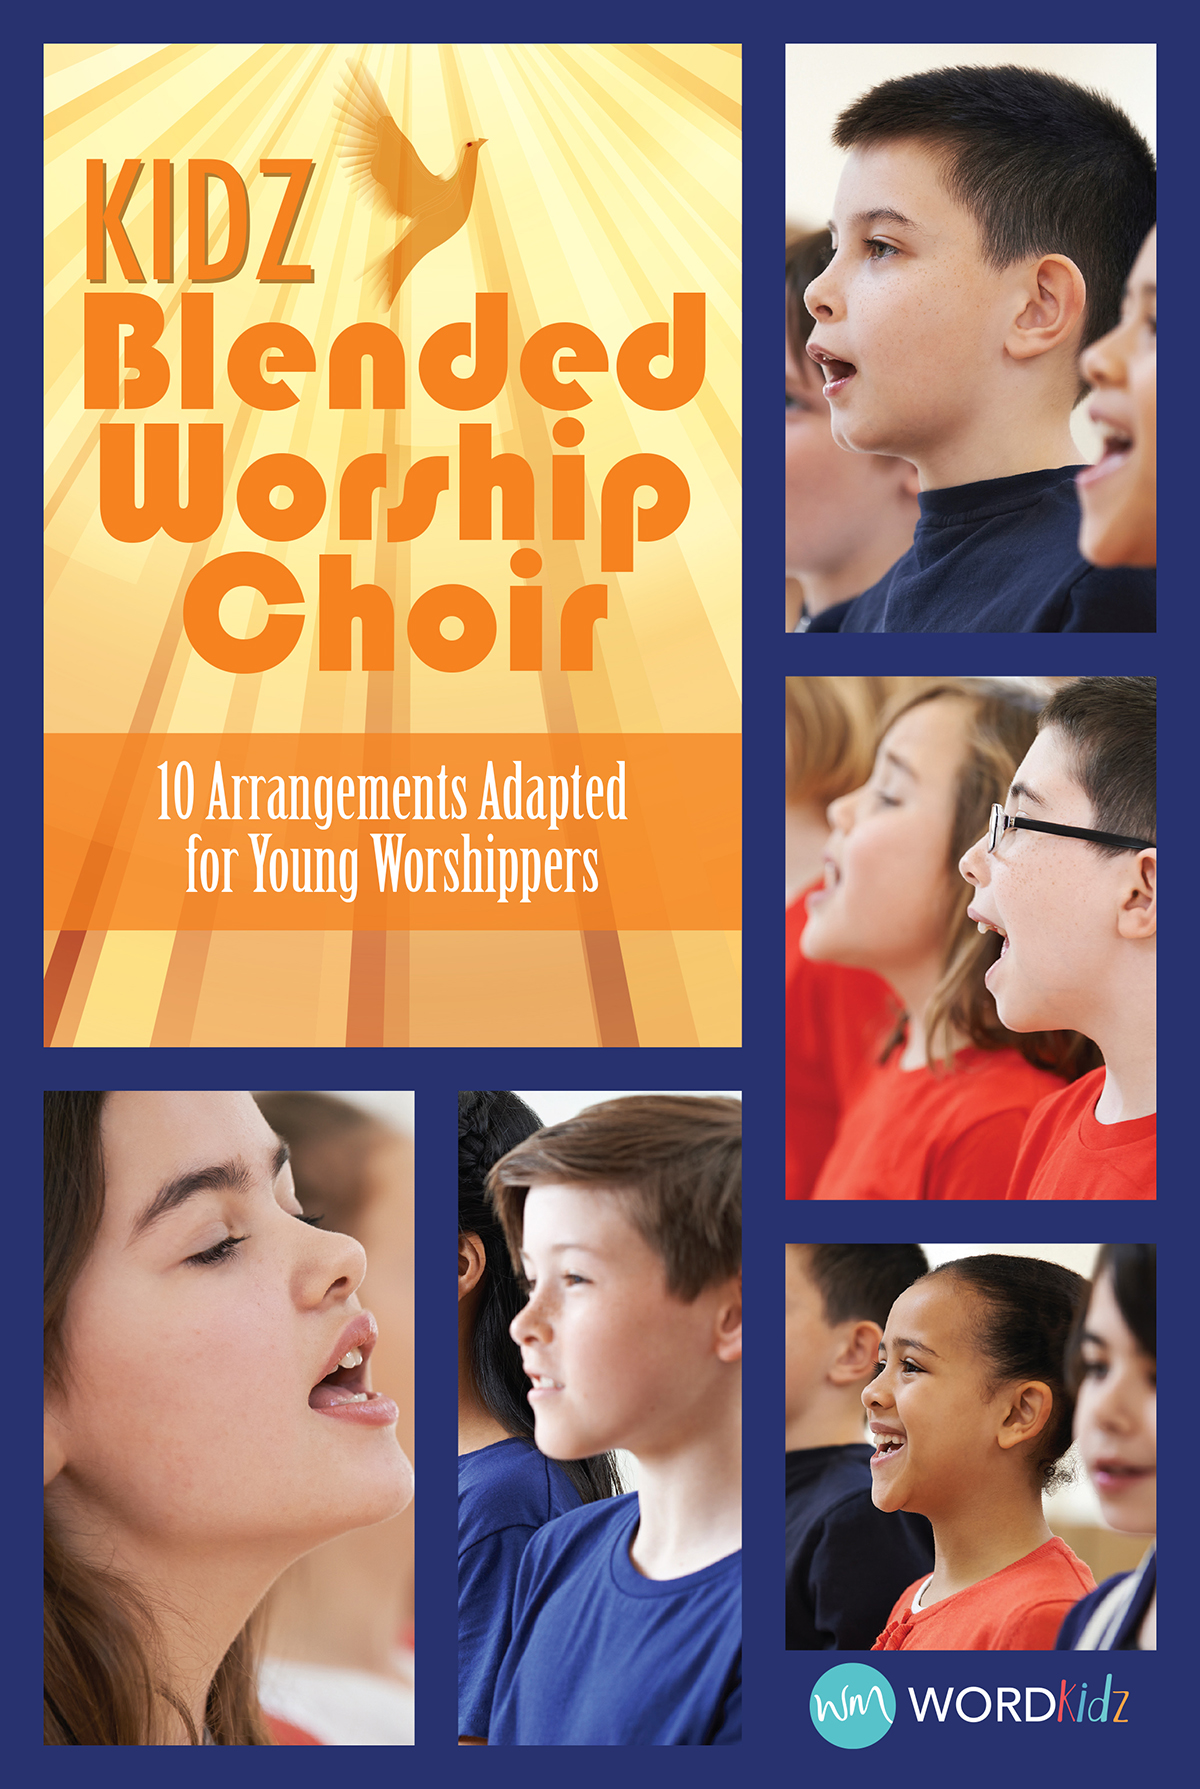 Kidz Blended Worship Choir